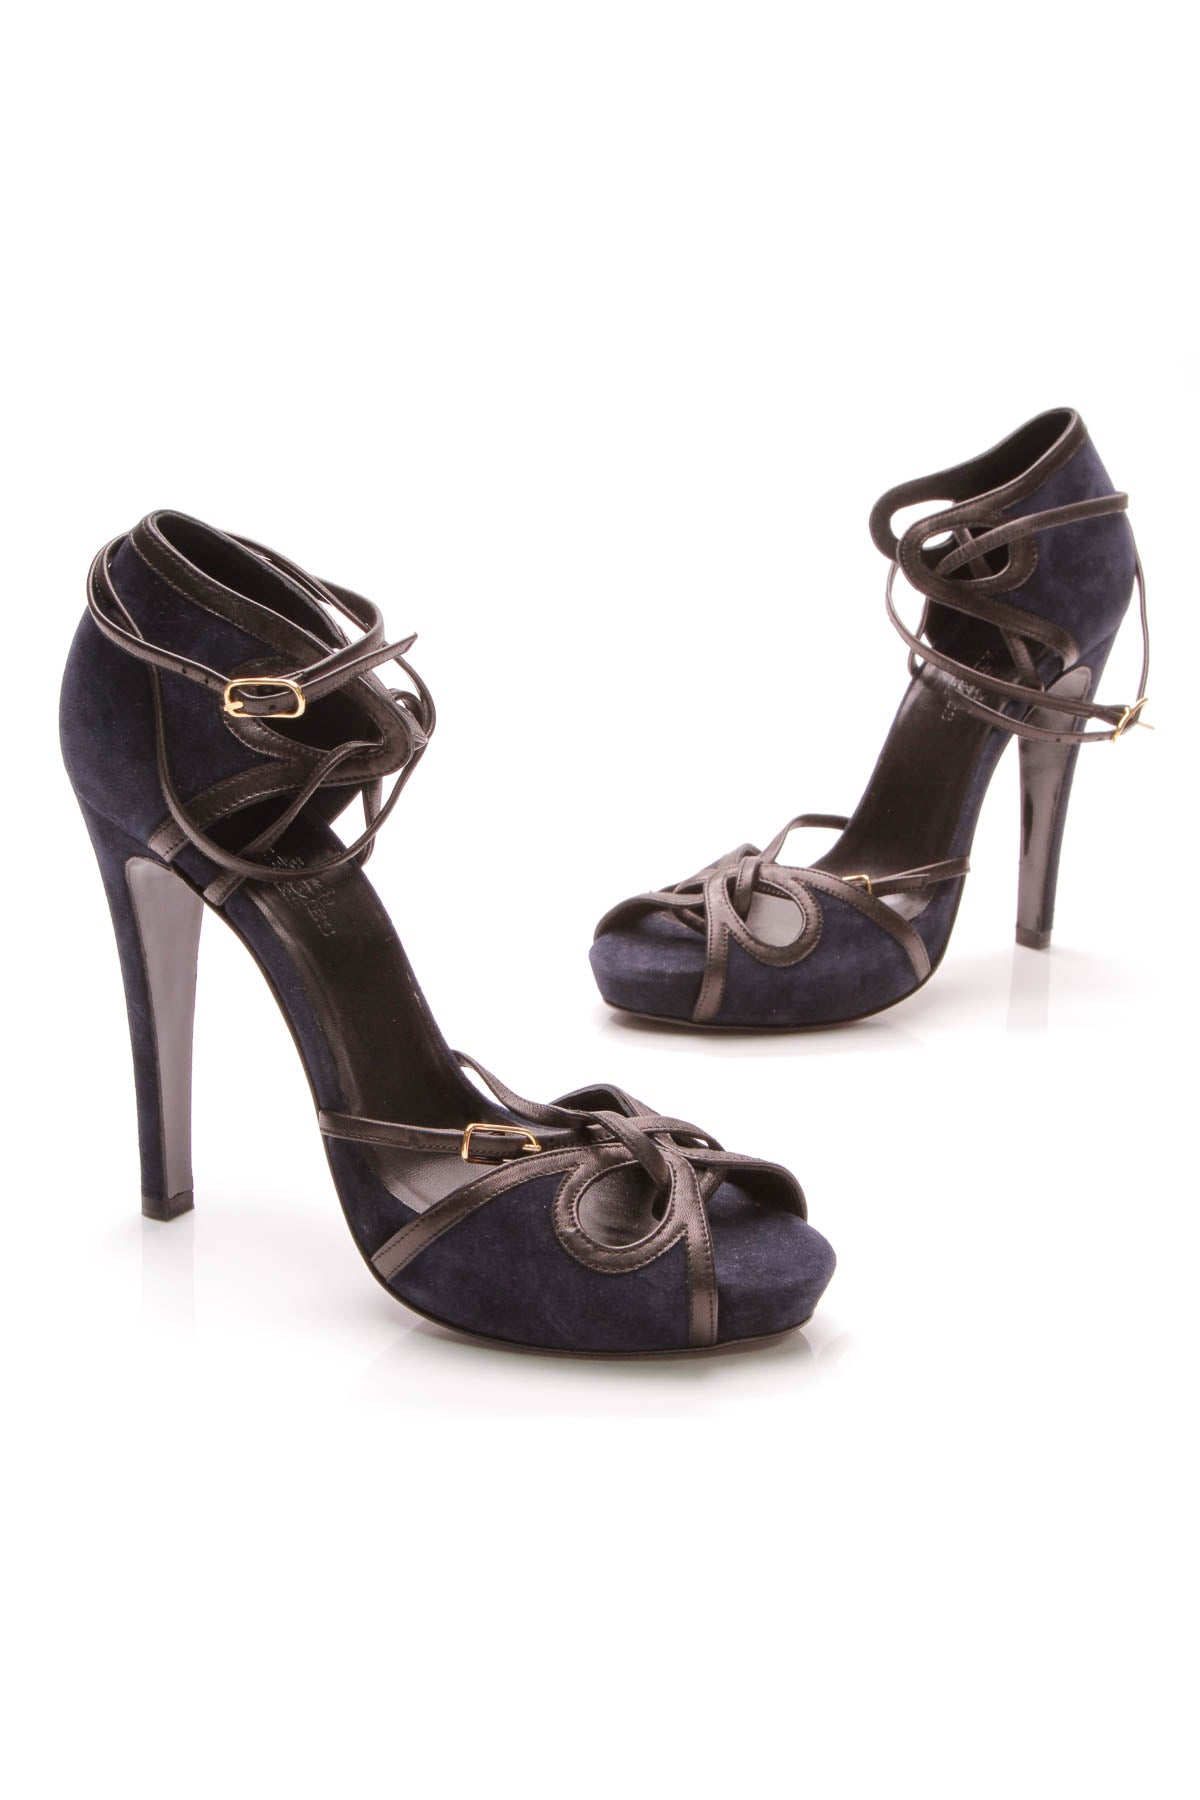 37725c9fe4 Hermes Strappy Platform Sandals - Navy Suede Size 38 – Couture USA